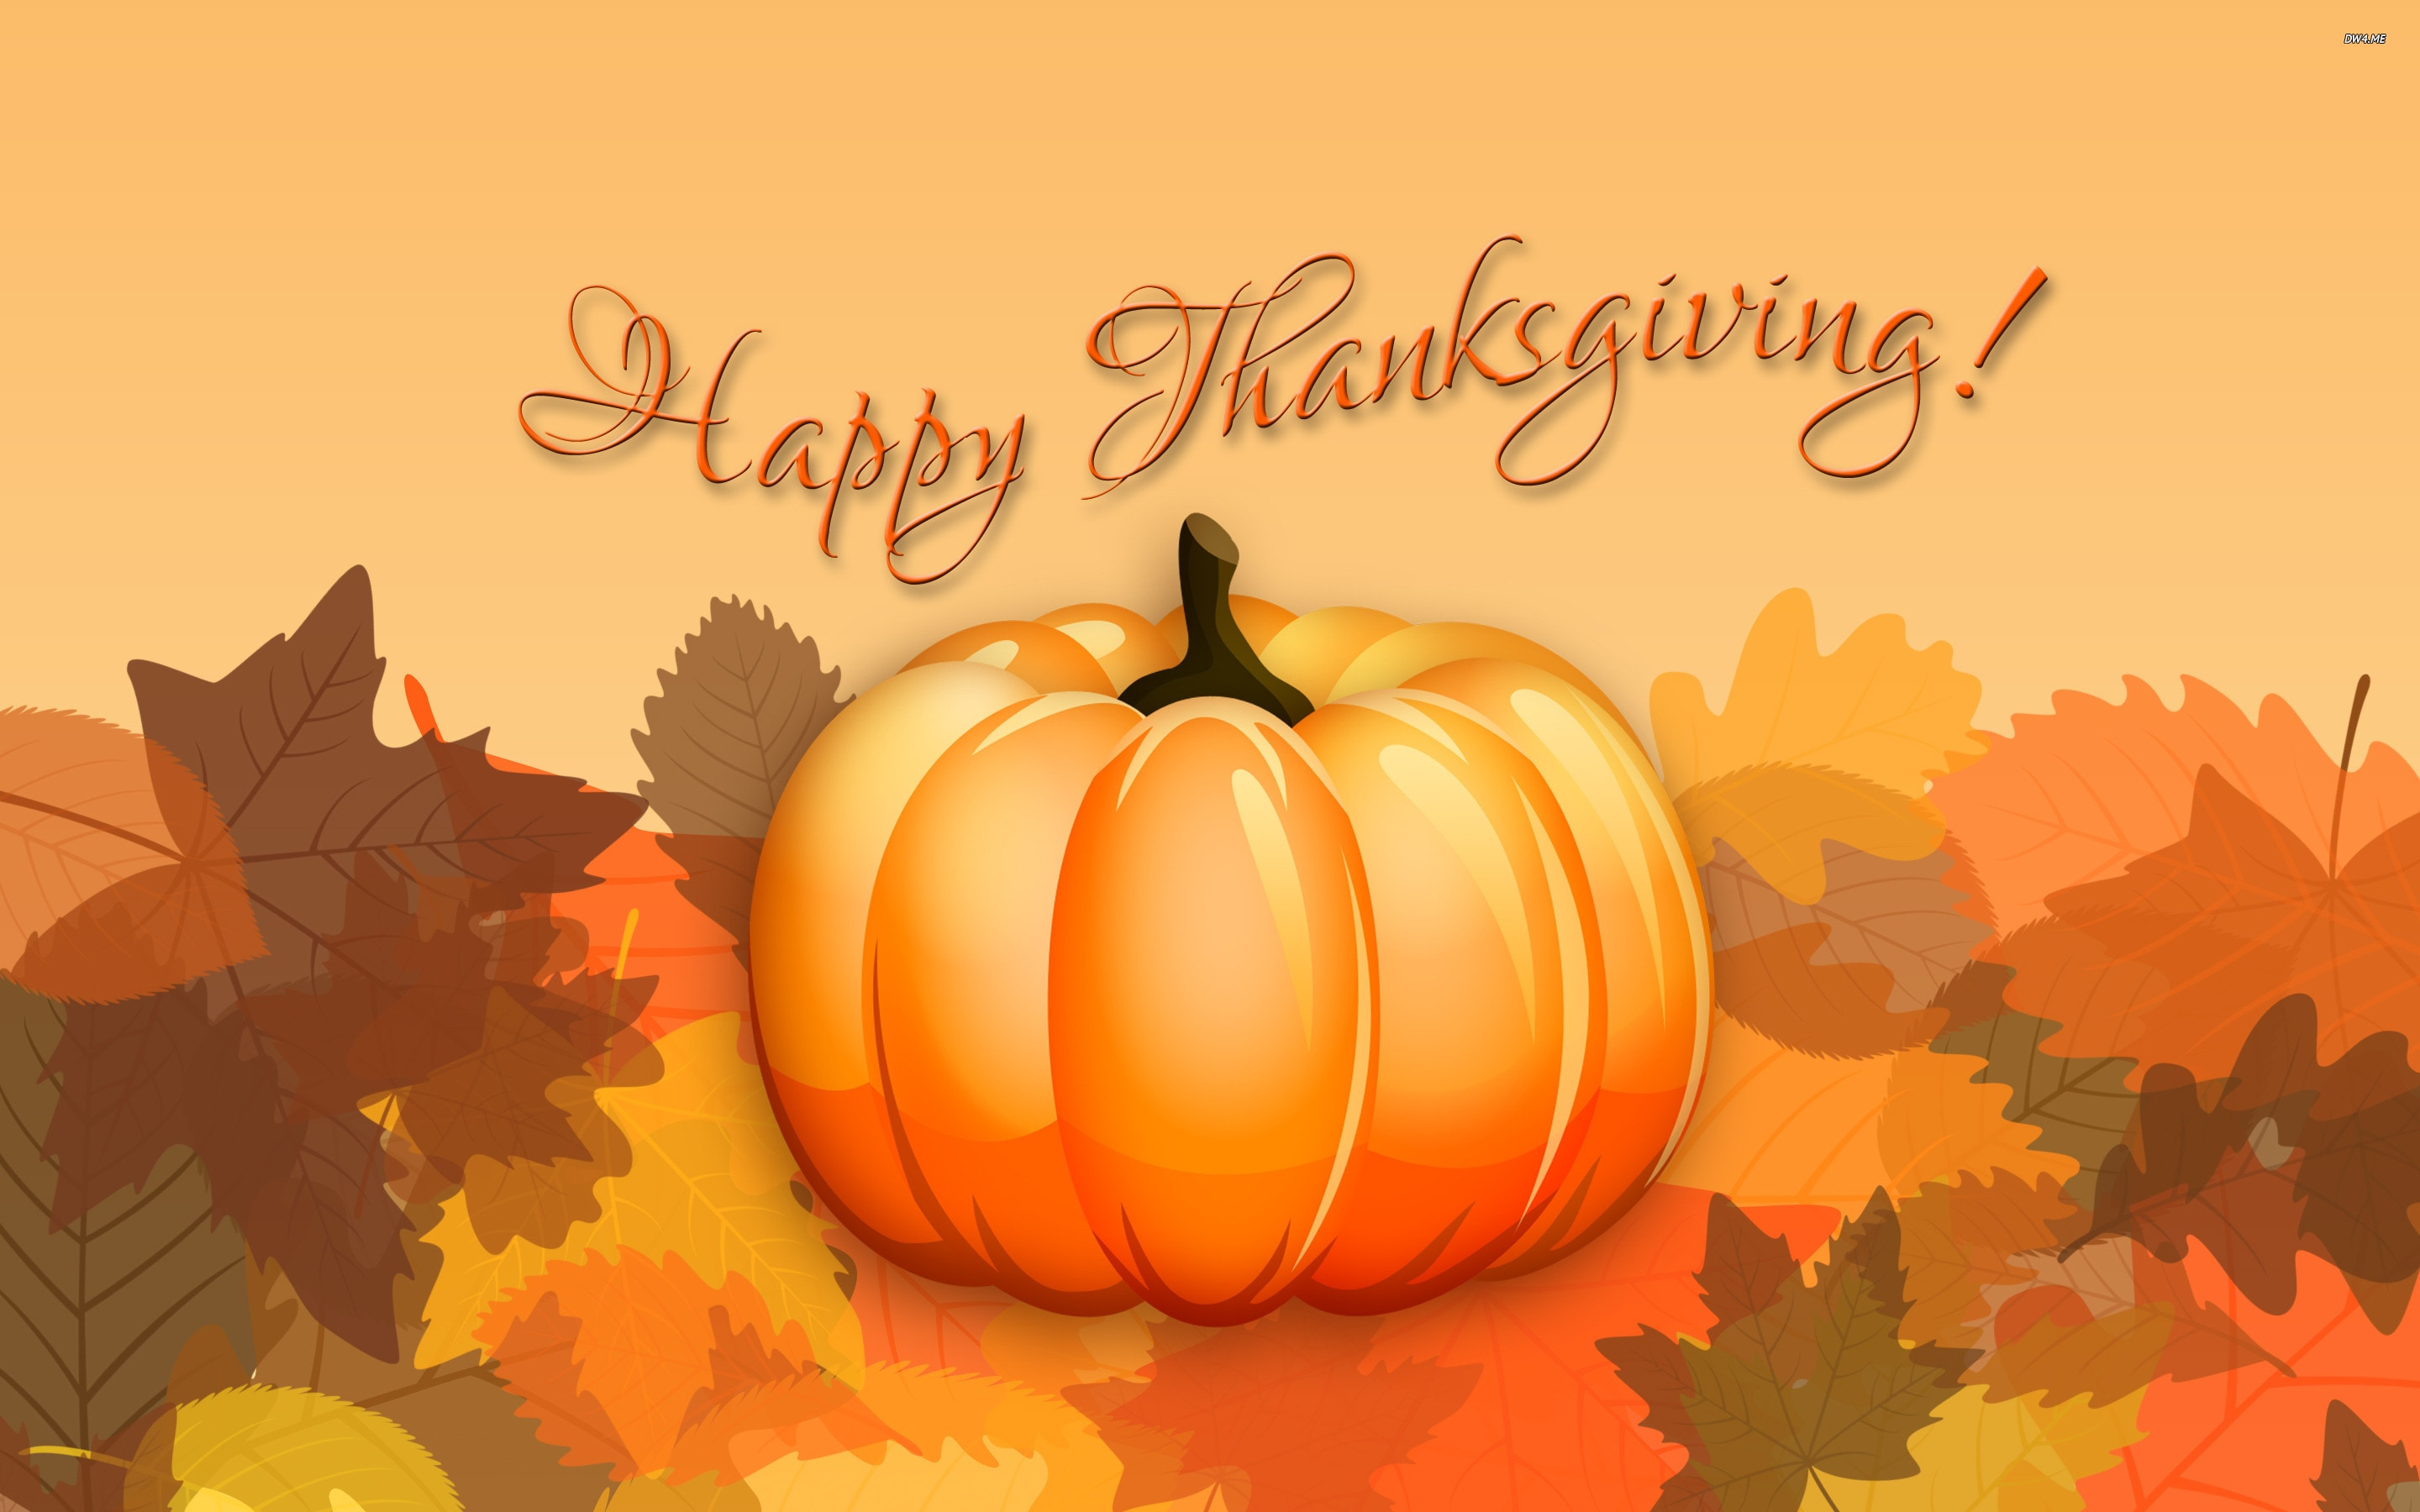 Download The Best Thanksgiving Wallpapers 2015 For Mobile